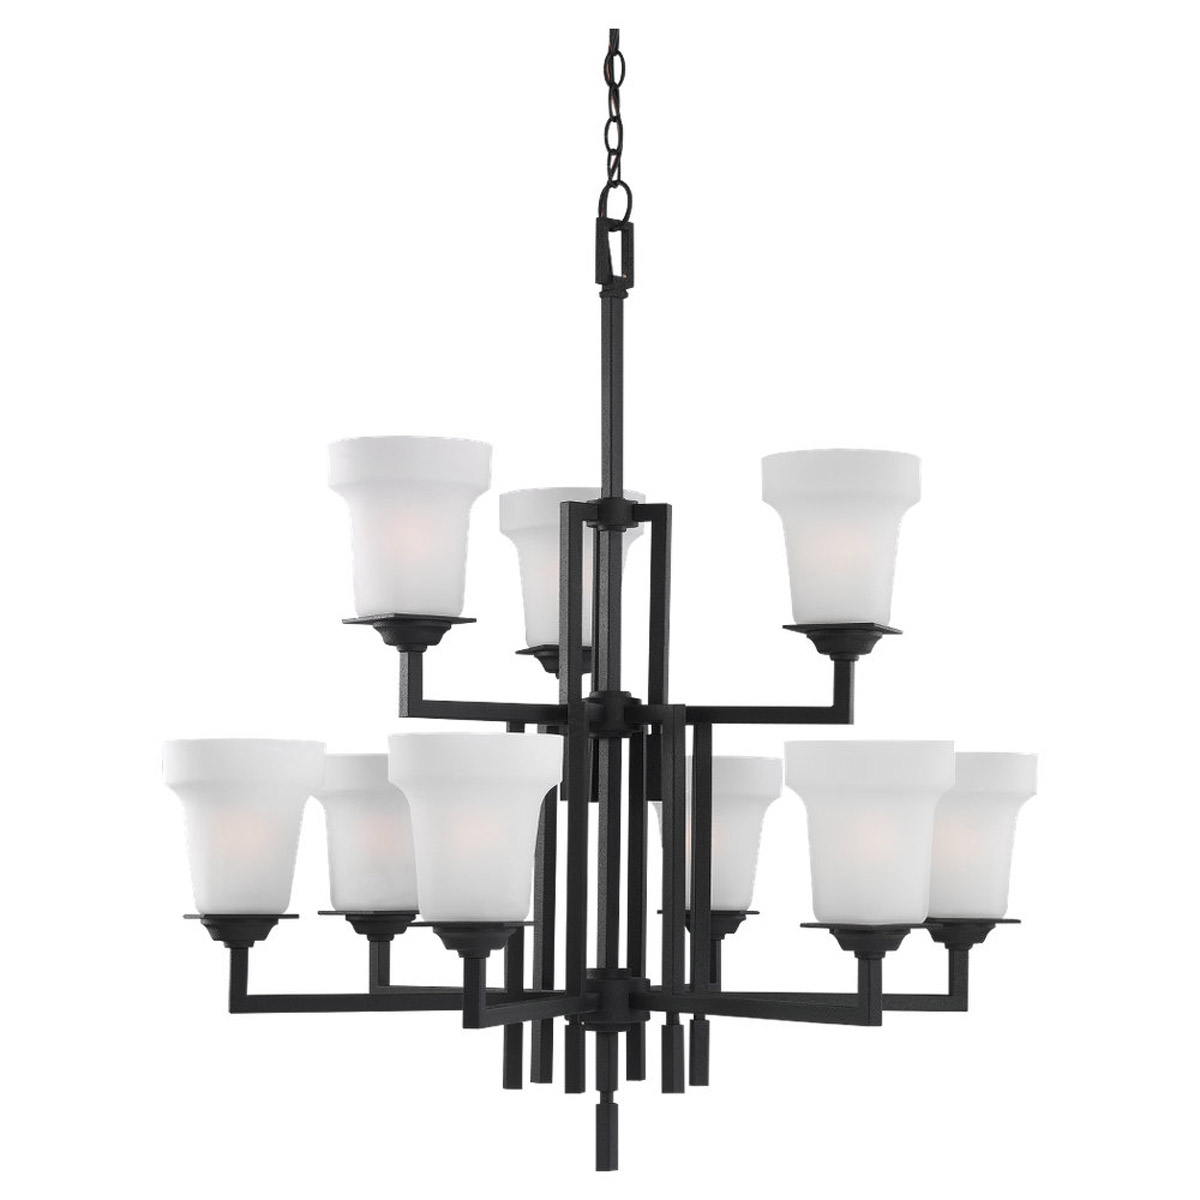 Sea Gull Lighting Cardwell 9 Light Chandelier in Blacksmith 31633-839